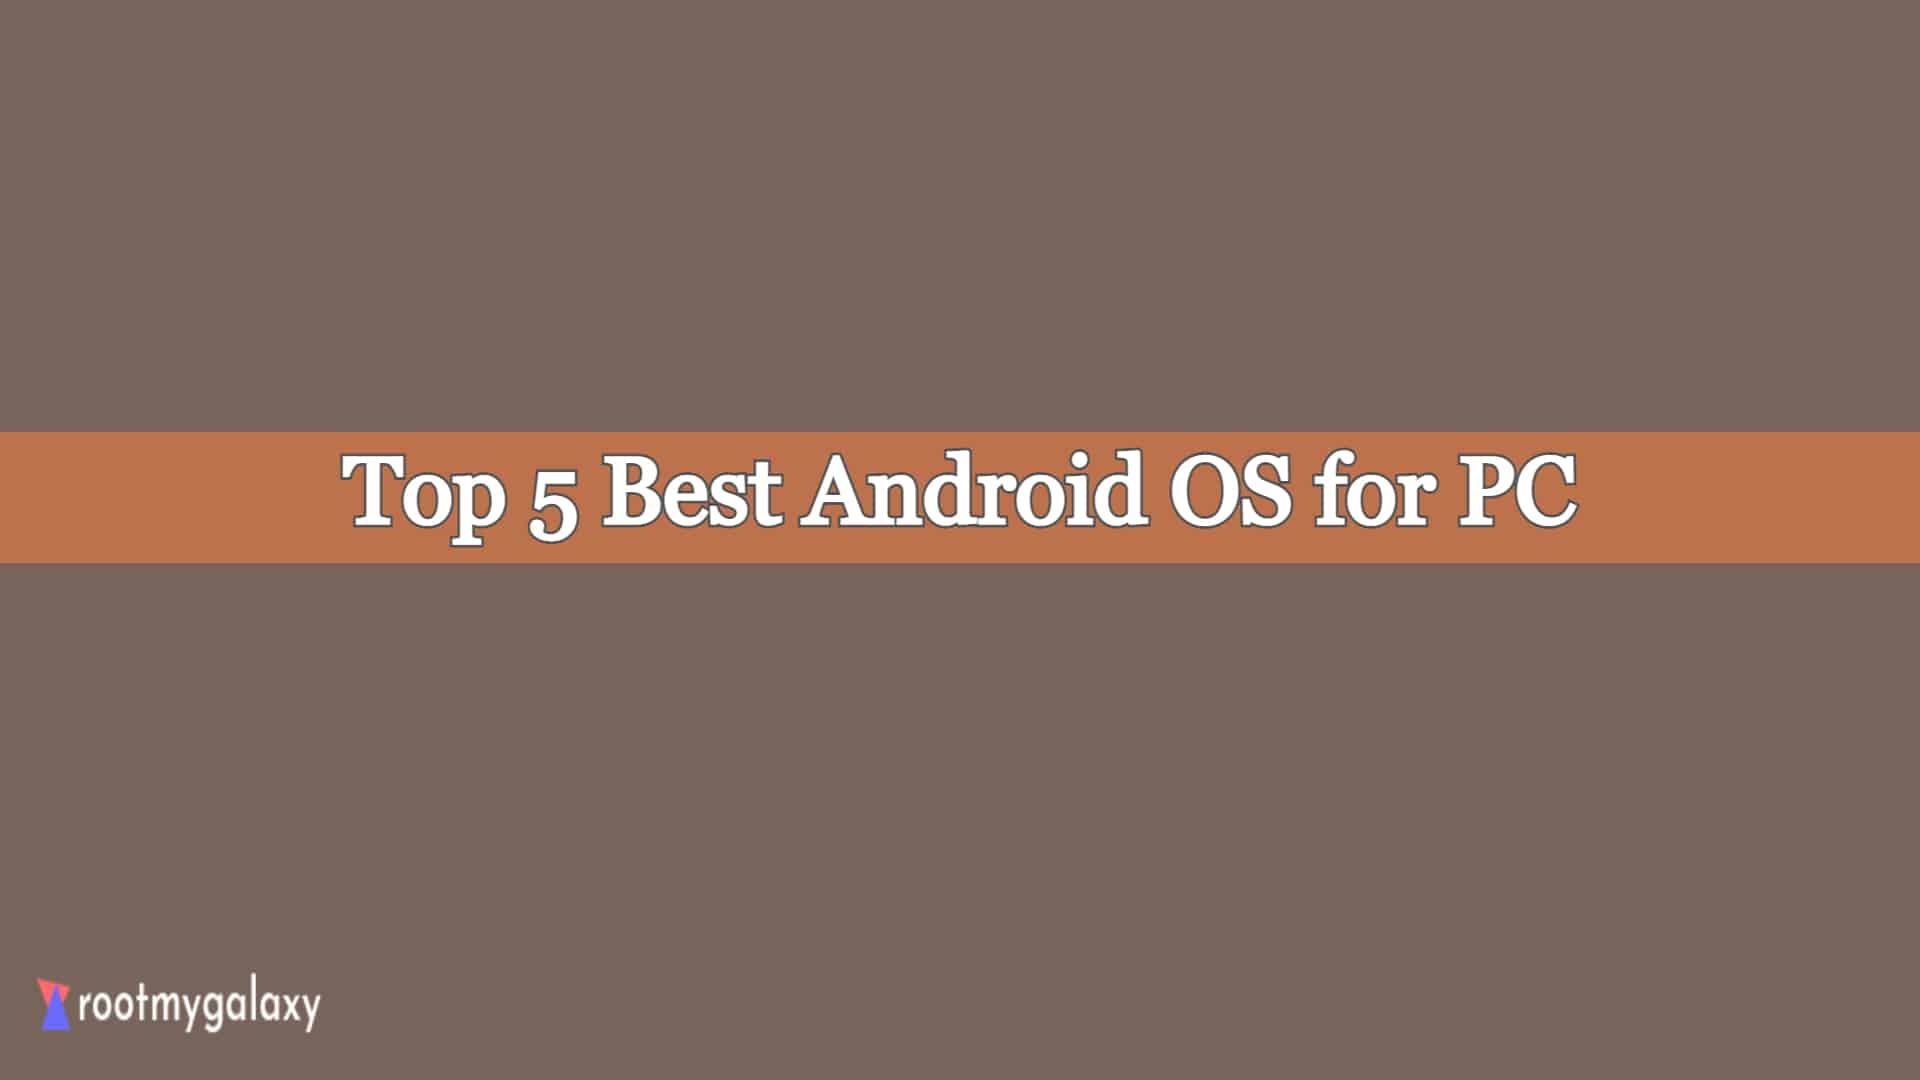 Top 5 best Android OS for PC